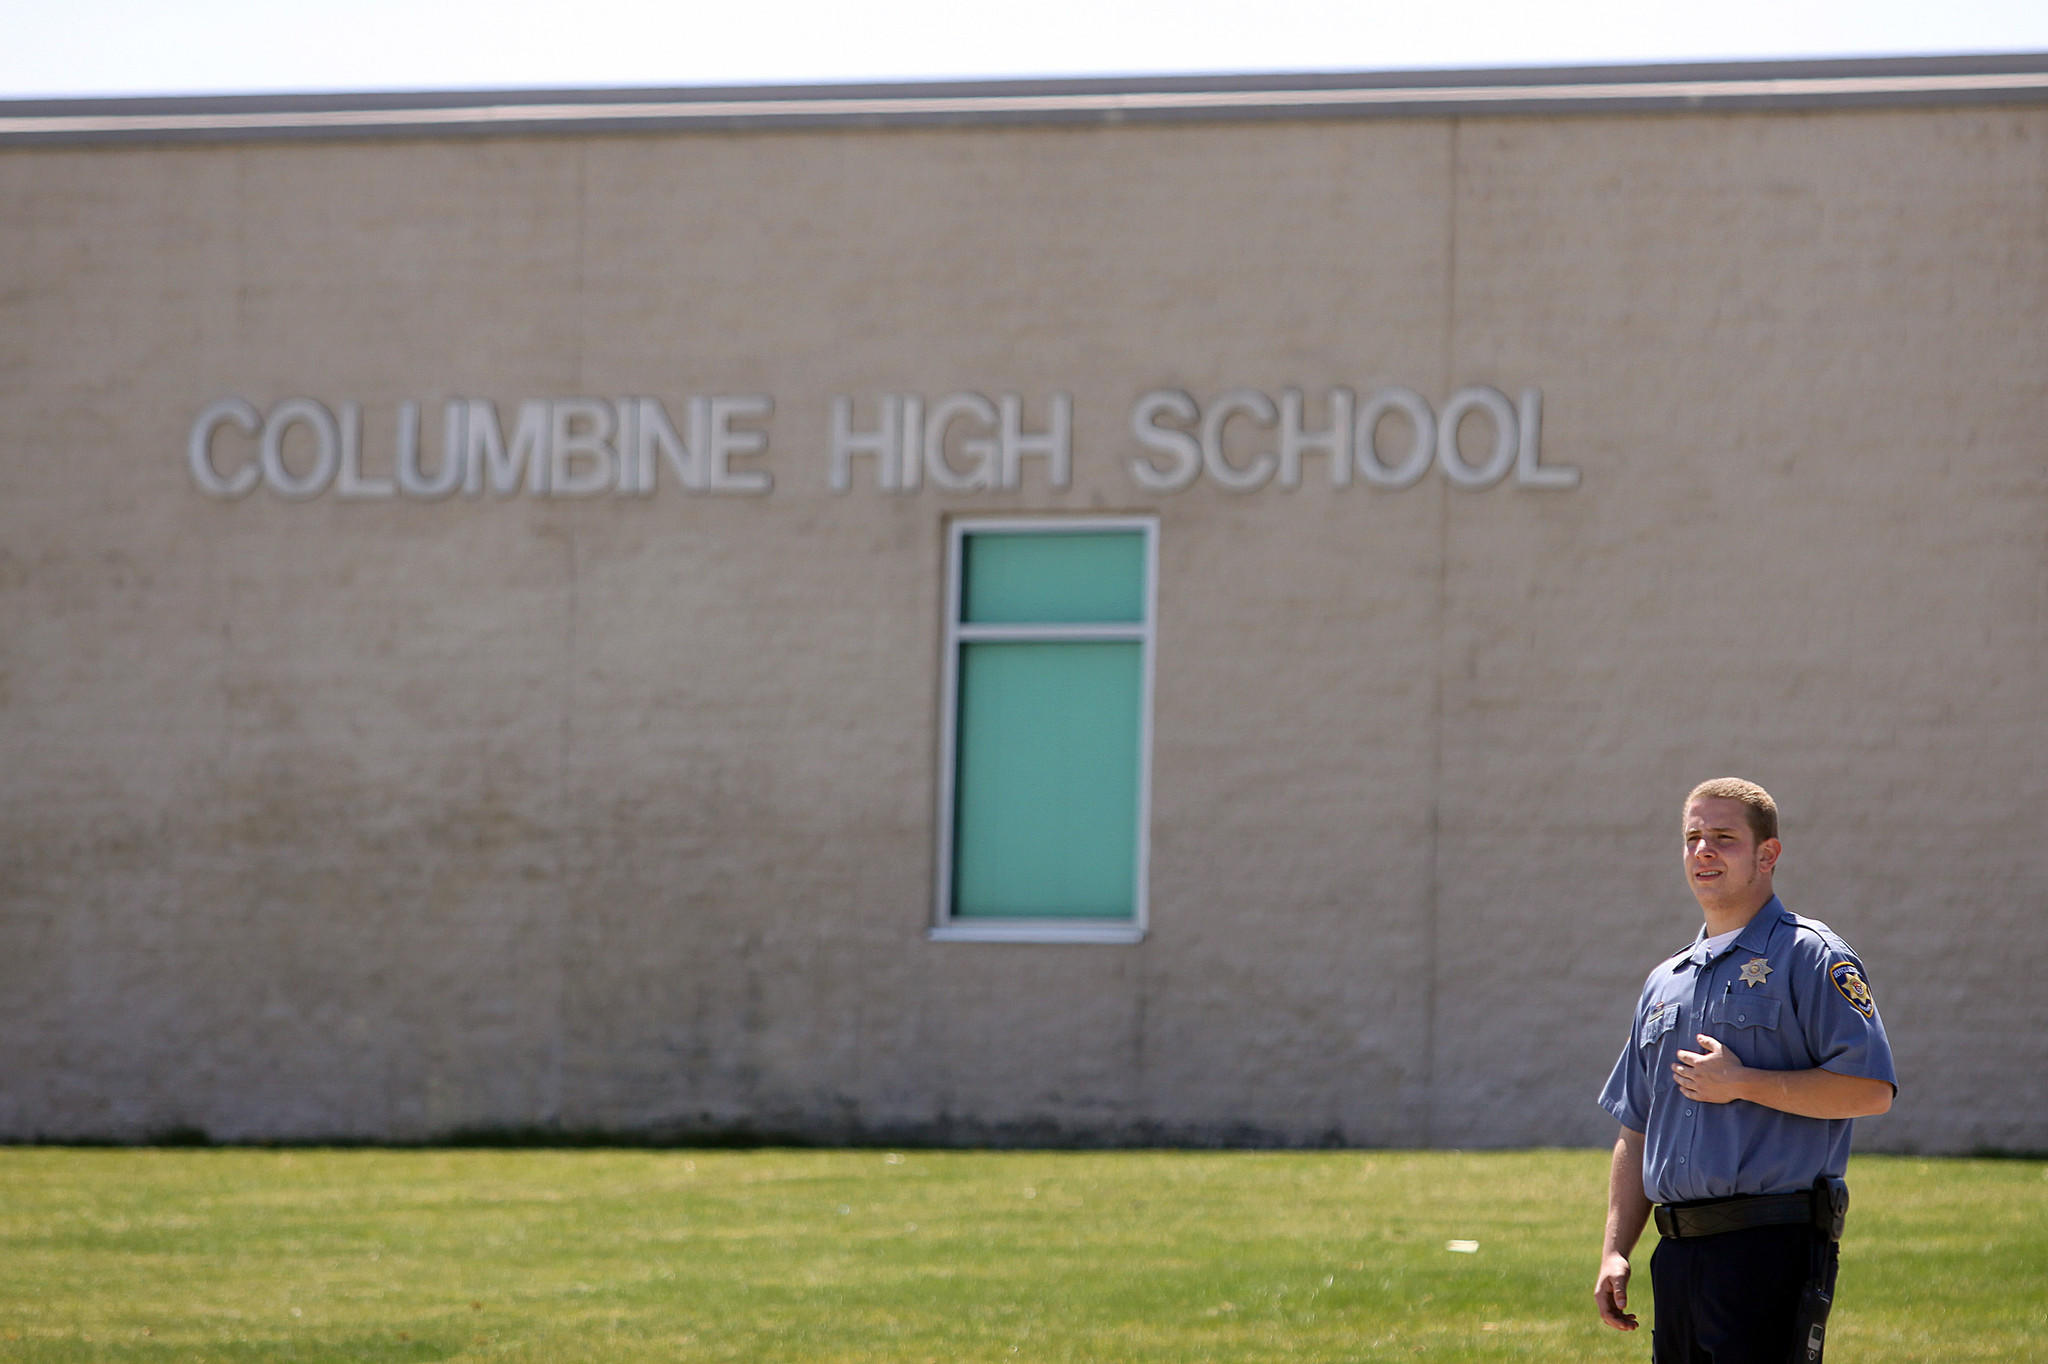 A Jefferson County Schools security officer stands guard at the entrance to Columbine High School on the ten-year anniversary of the Columbine High School shootings in 2009.